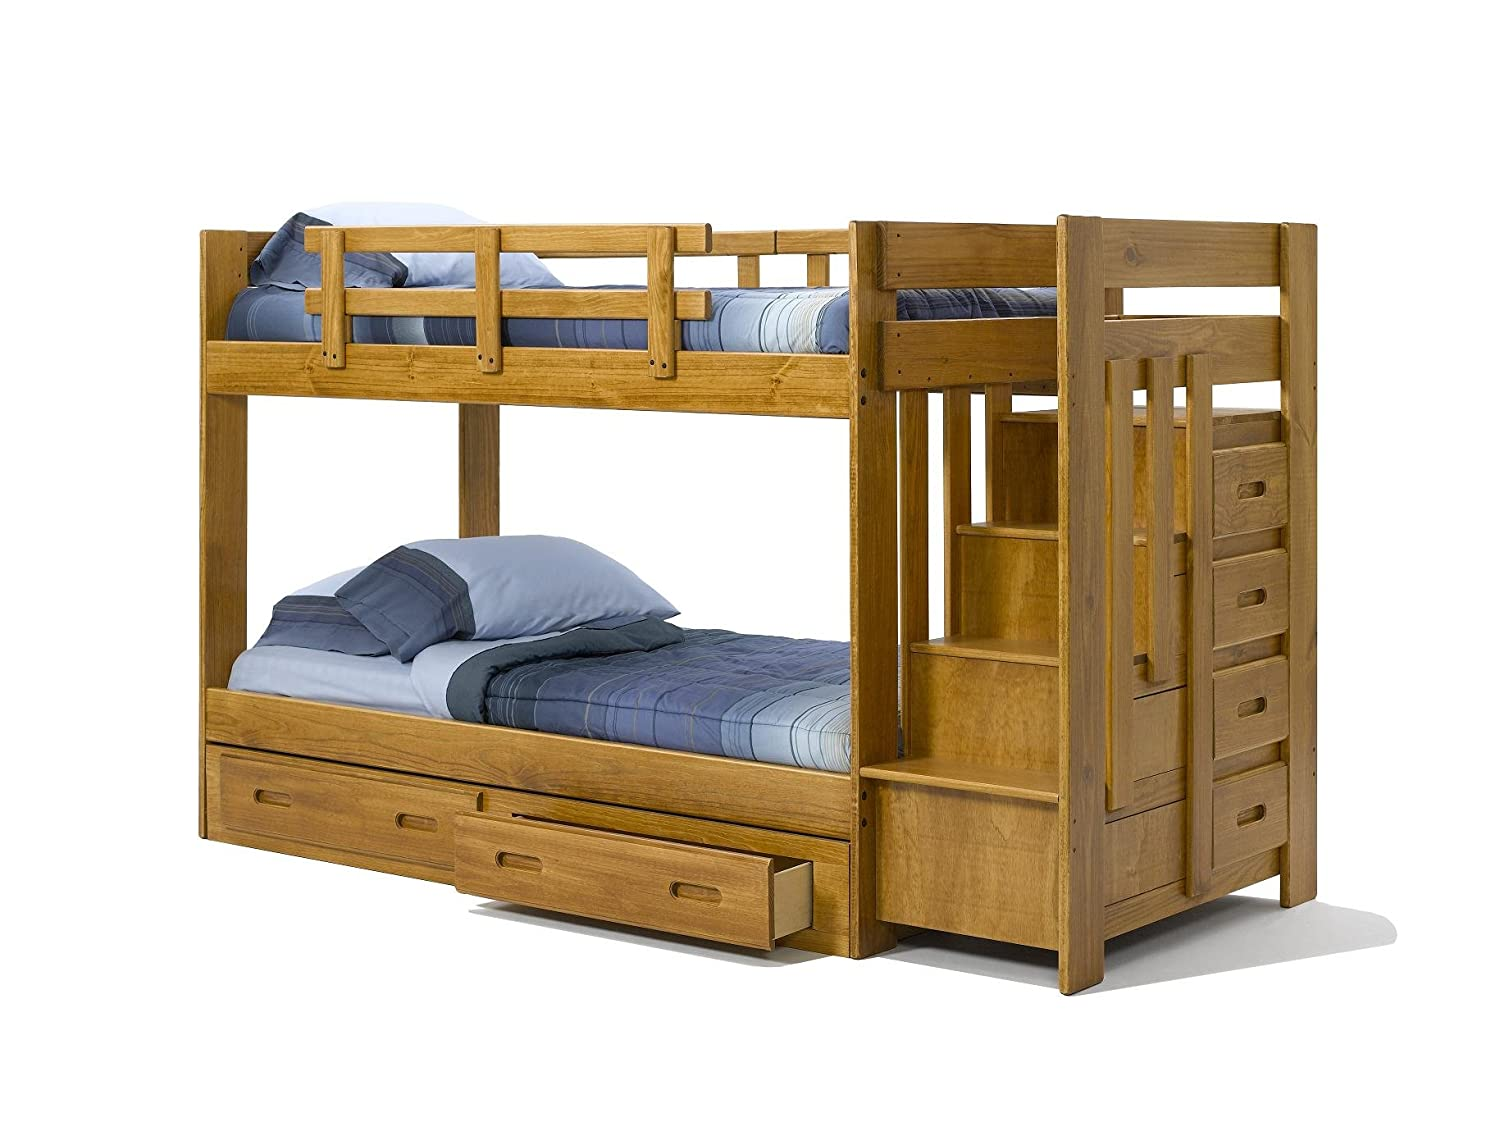 Bunk bed with stairs and storage - A Great Breakdown On Bunk Beds For Kids This Mom Discussed All The Different Factors Stairs And Storage